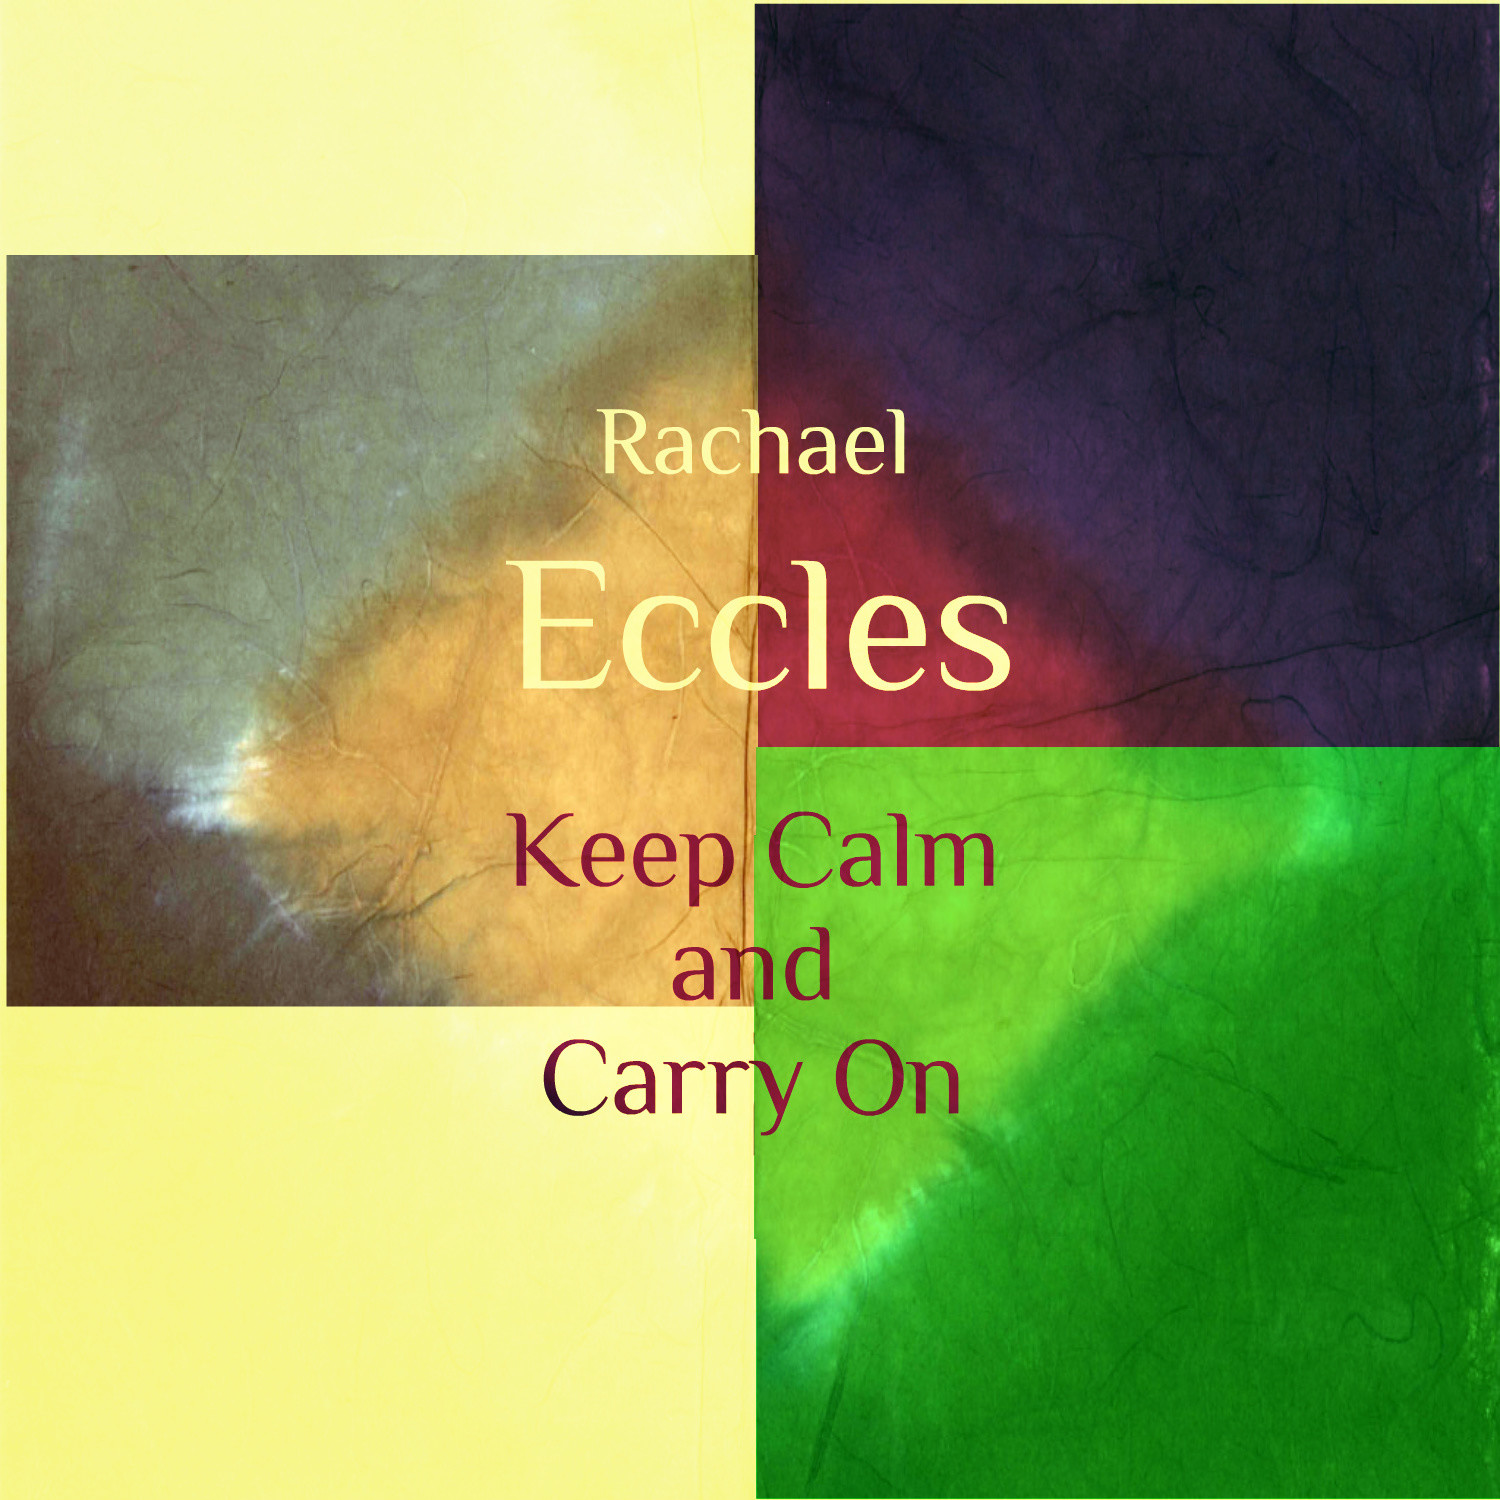 Keep Calm and Carry on, Stay Calm Under Pressure, Guided Meditation Hypnosis Download or CD